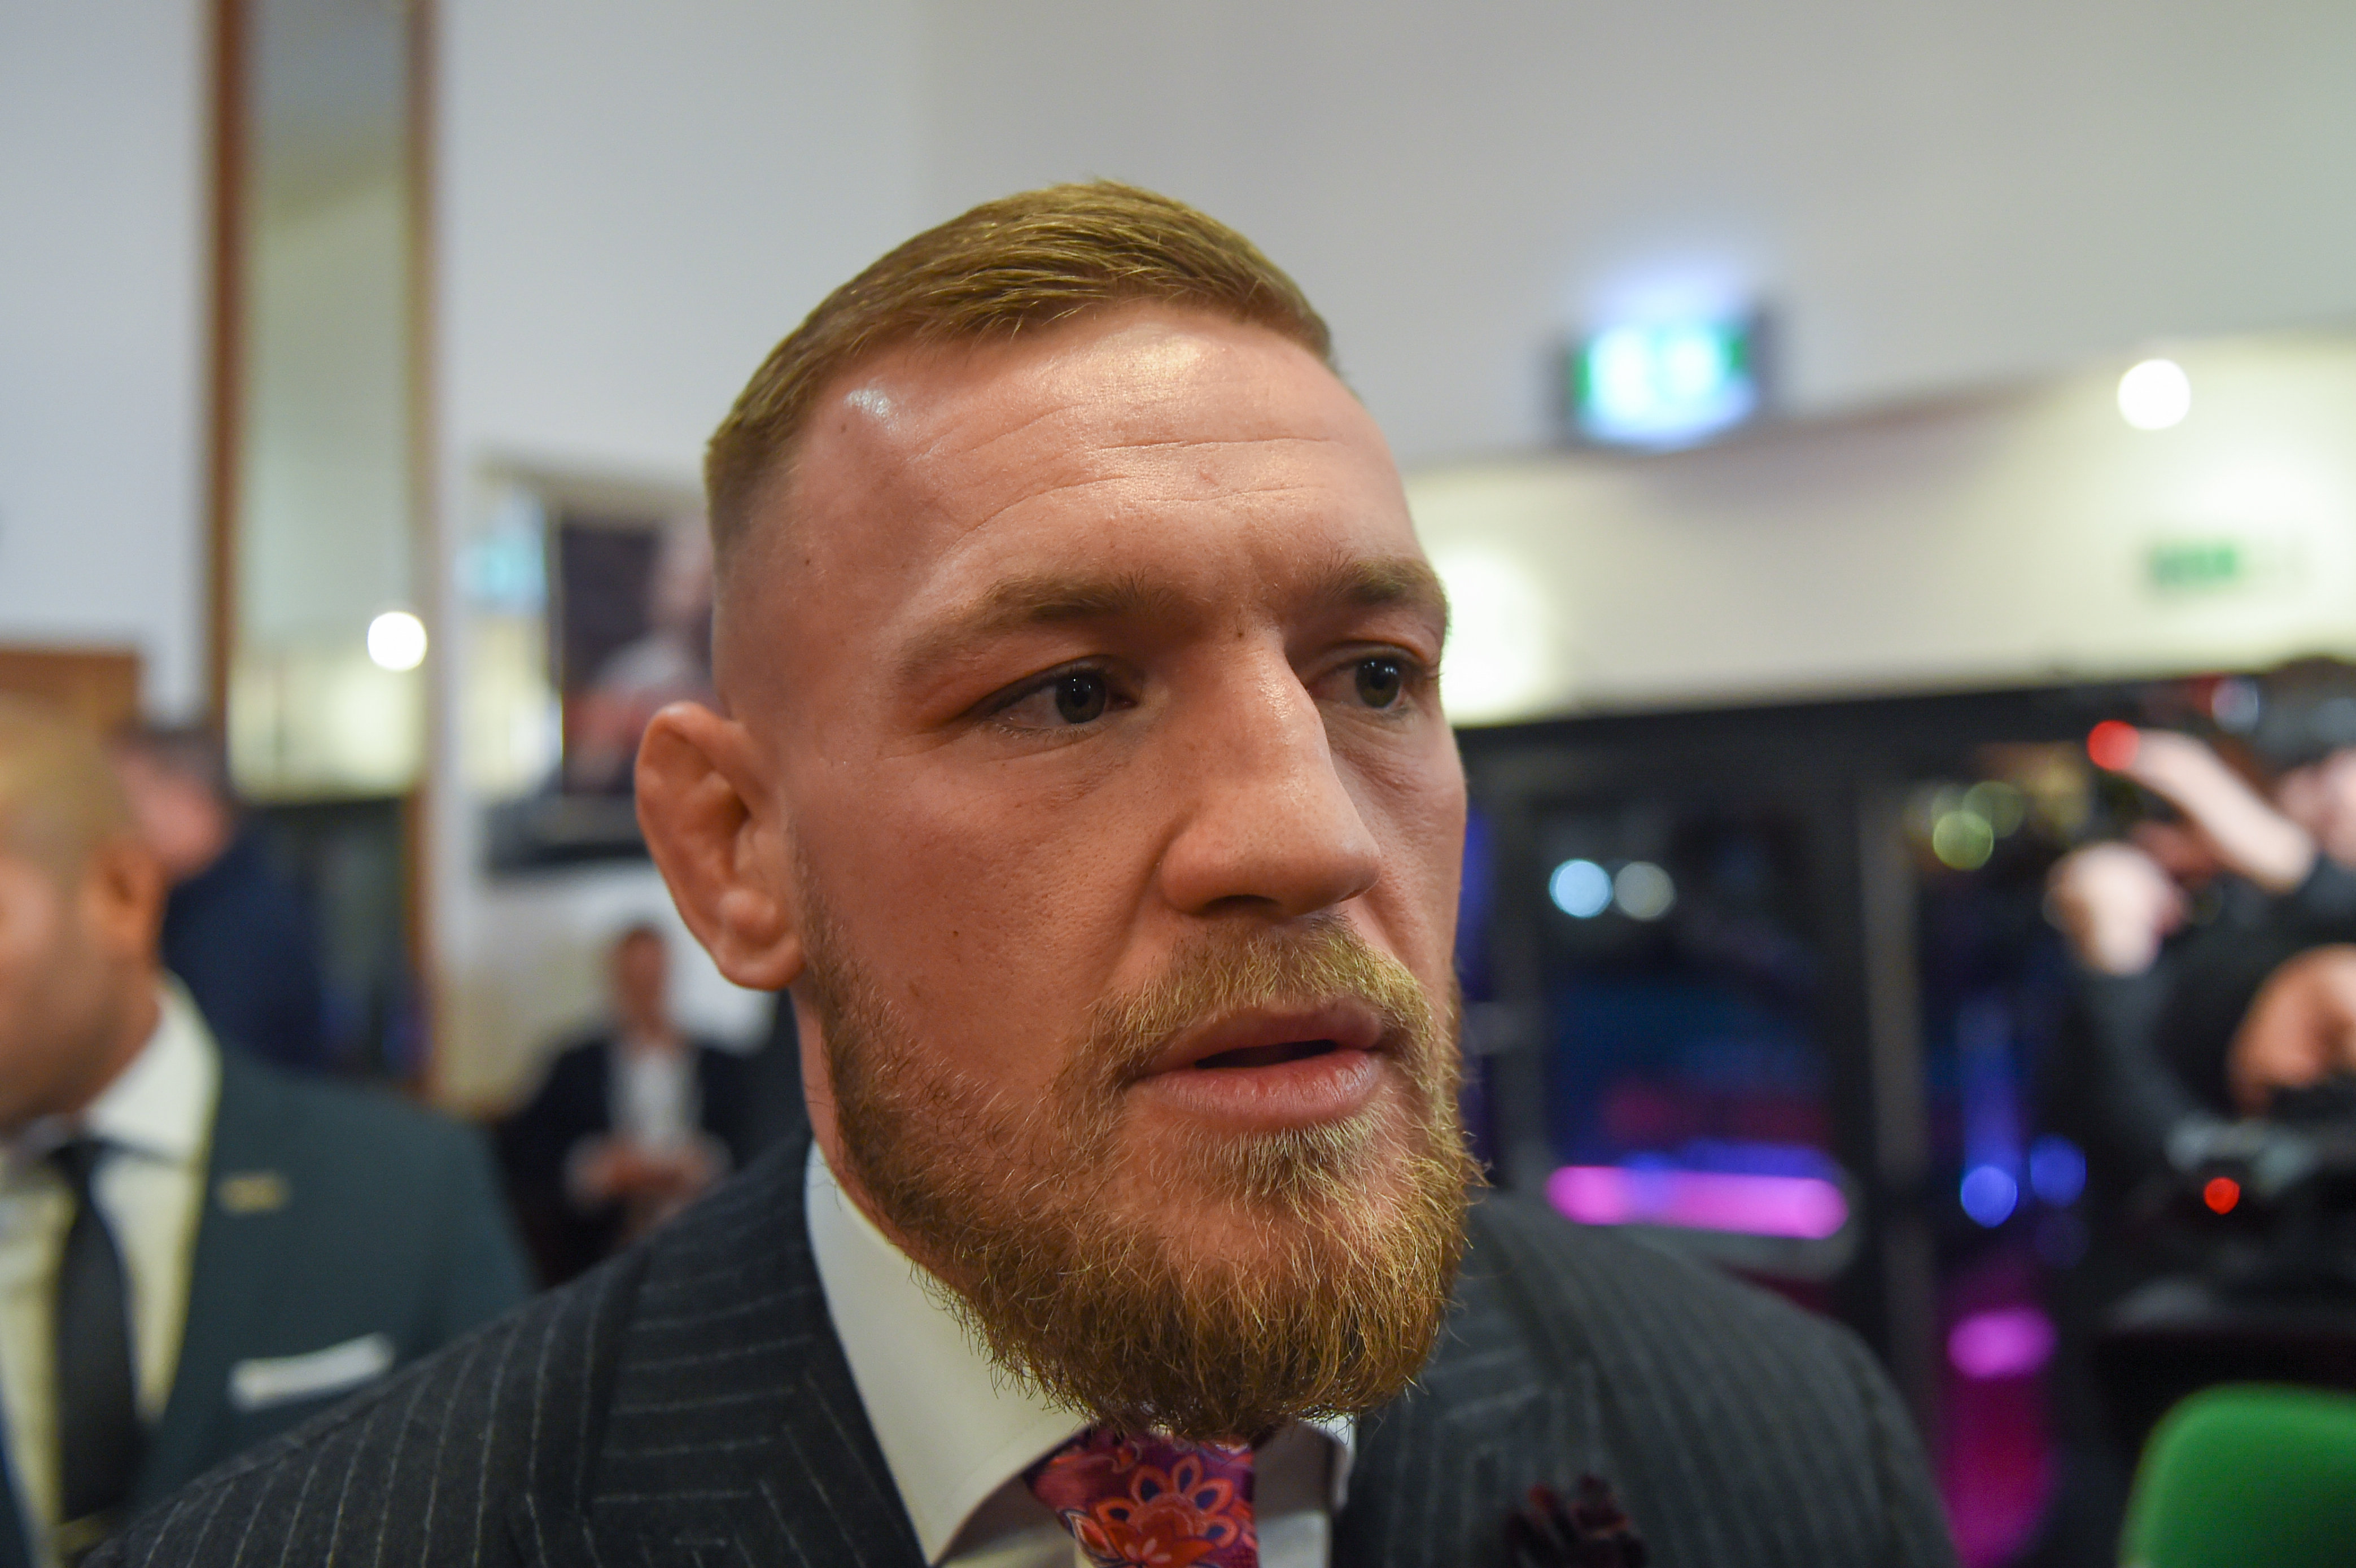 Conor McGregor arrives at the Conor McGregor Notorious film premiere at the Savoy Cinema in Dublin on Nov. 1, 2017